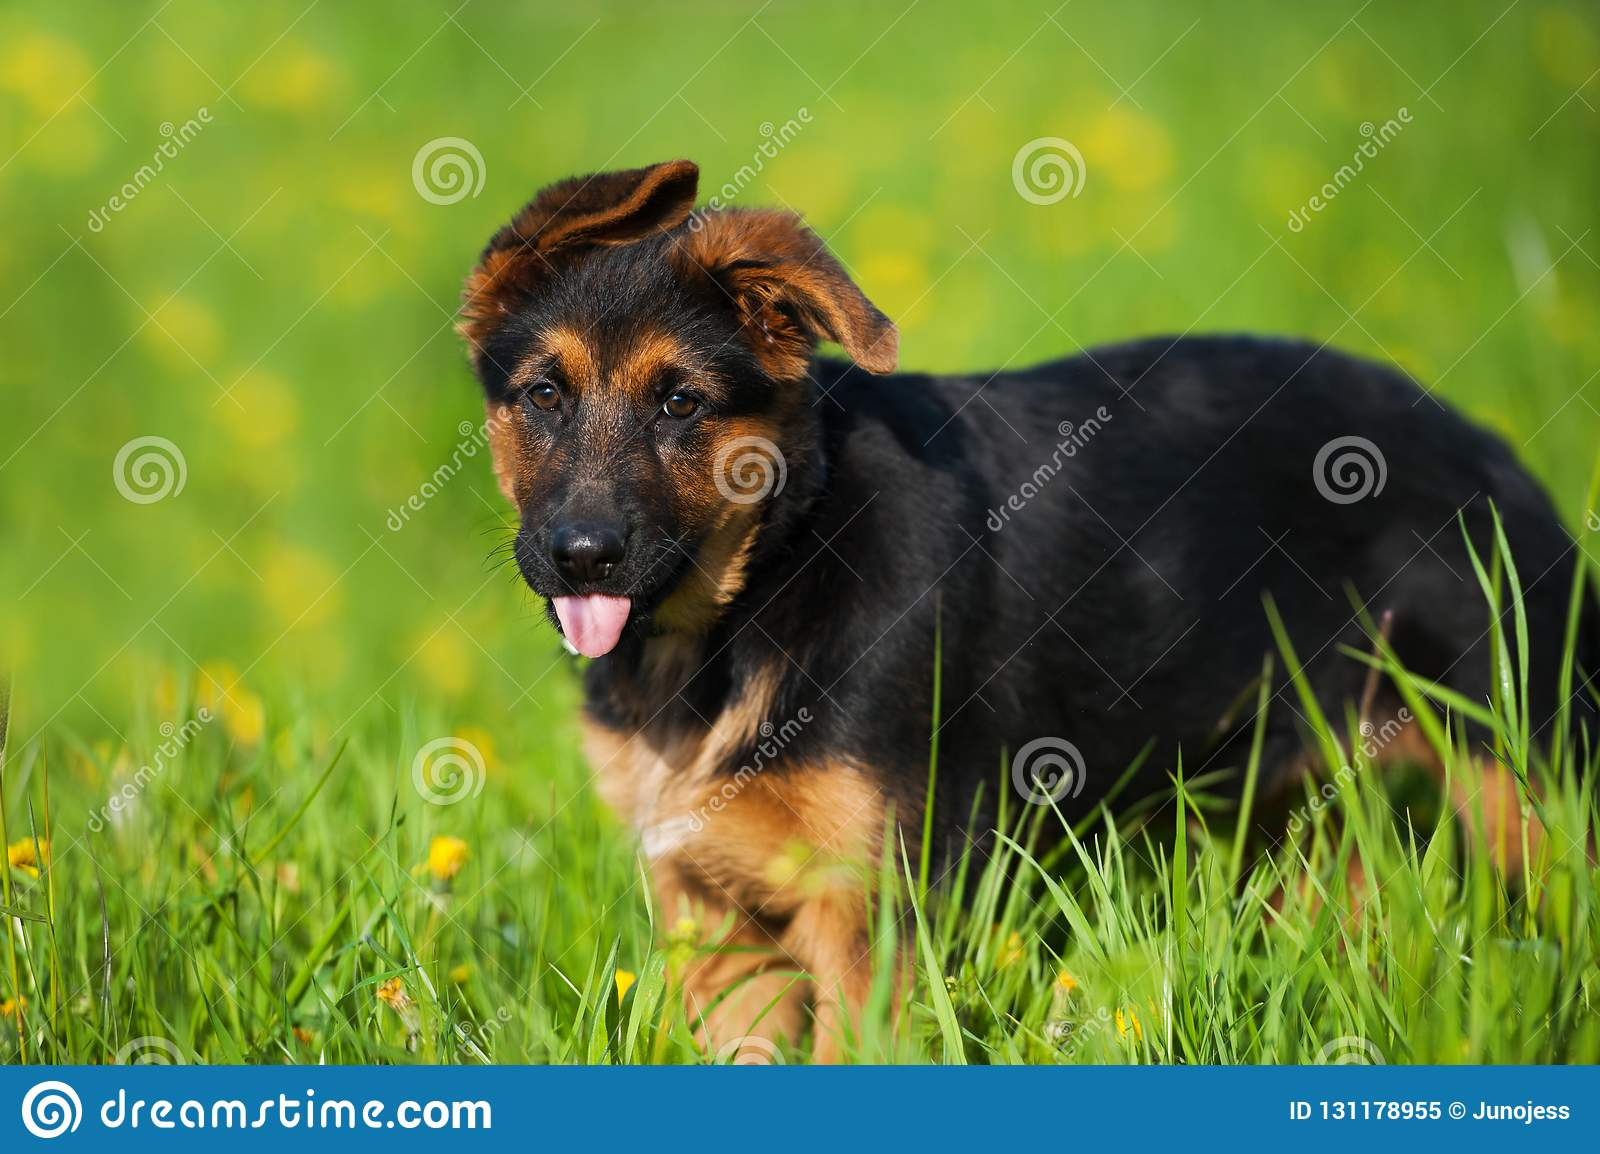 Cute German Shepherd Puppy Standing In A Flower Meadow Stock Image Image Of Camera Nature 131178955